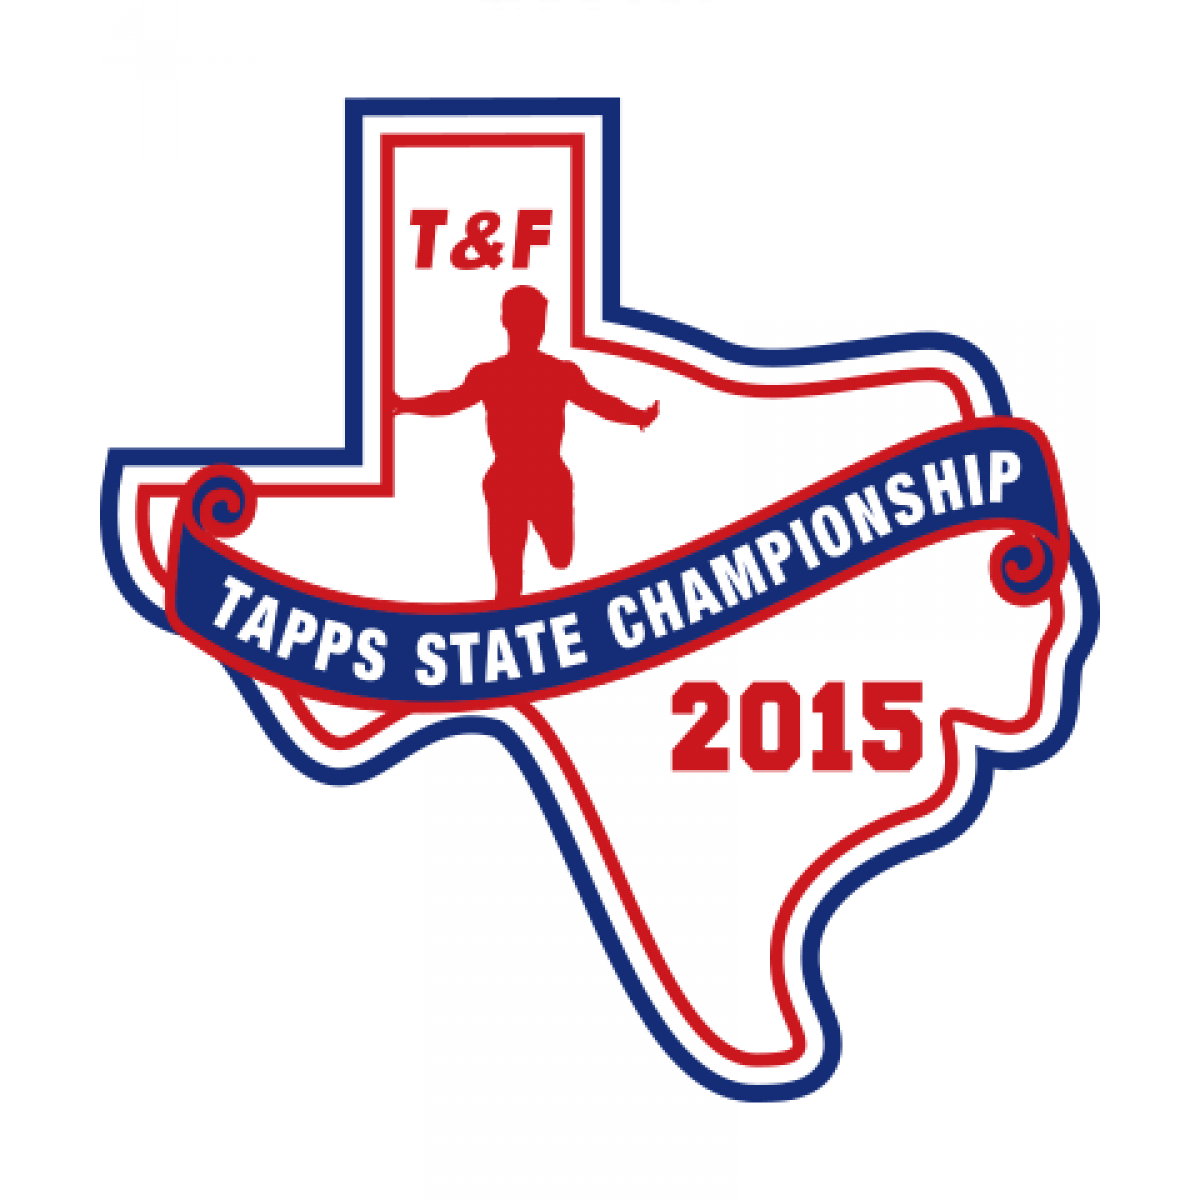 Felt TAPPS 2015 T&F State Patch